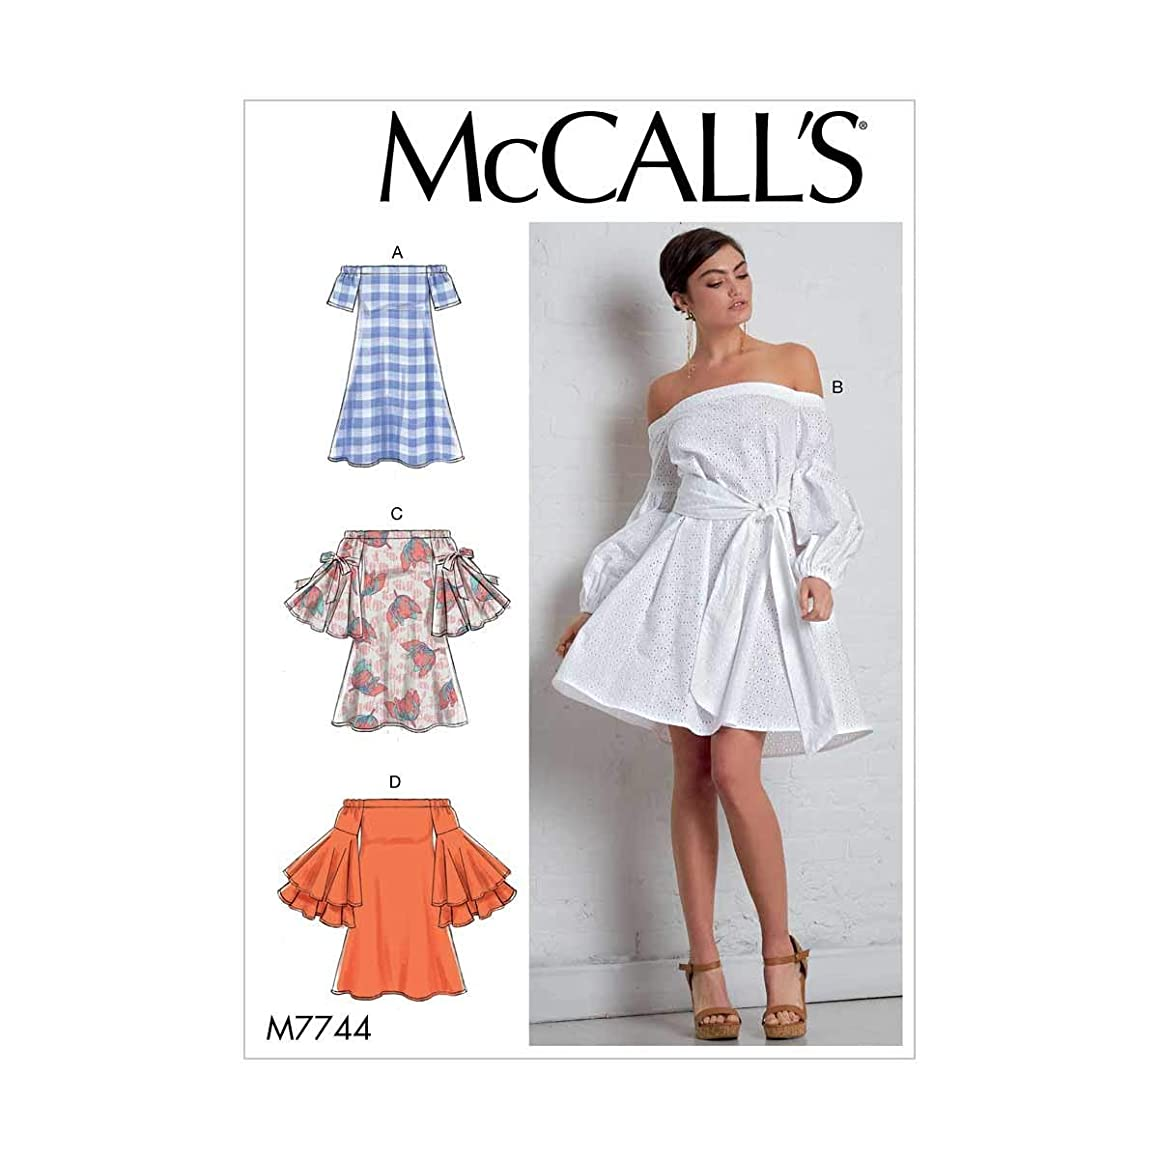 McCall's Patterns M7744A50 Misses' Dresses and Belt Sewing Pattern, A5 (6-8-10-12-14)